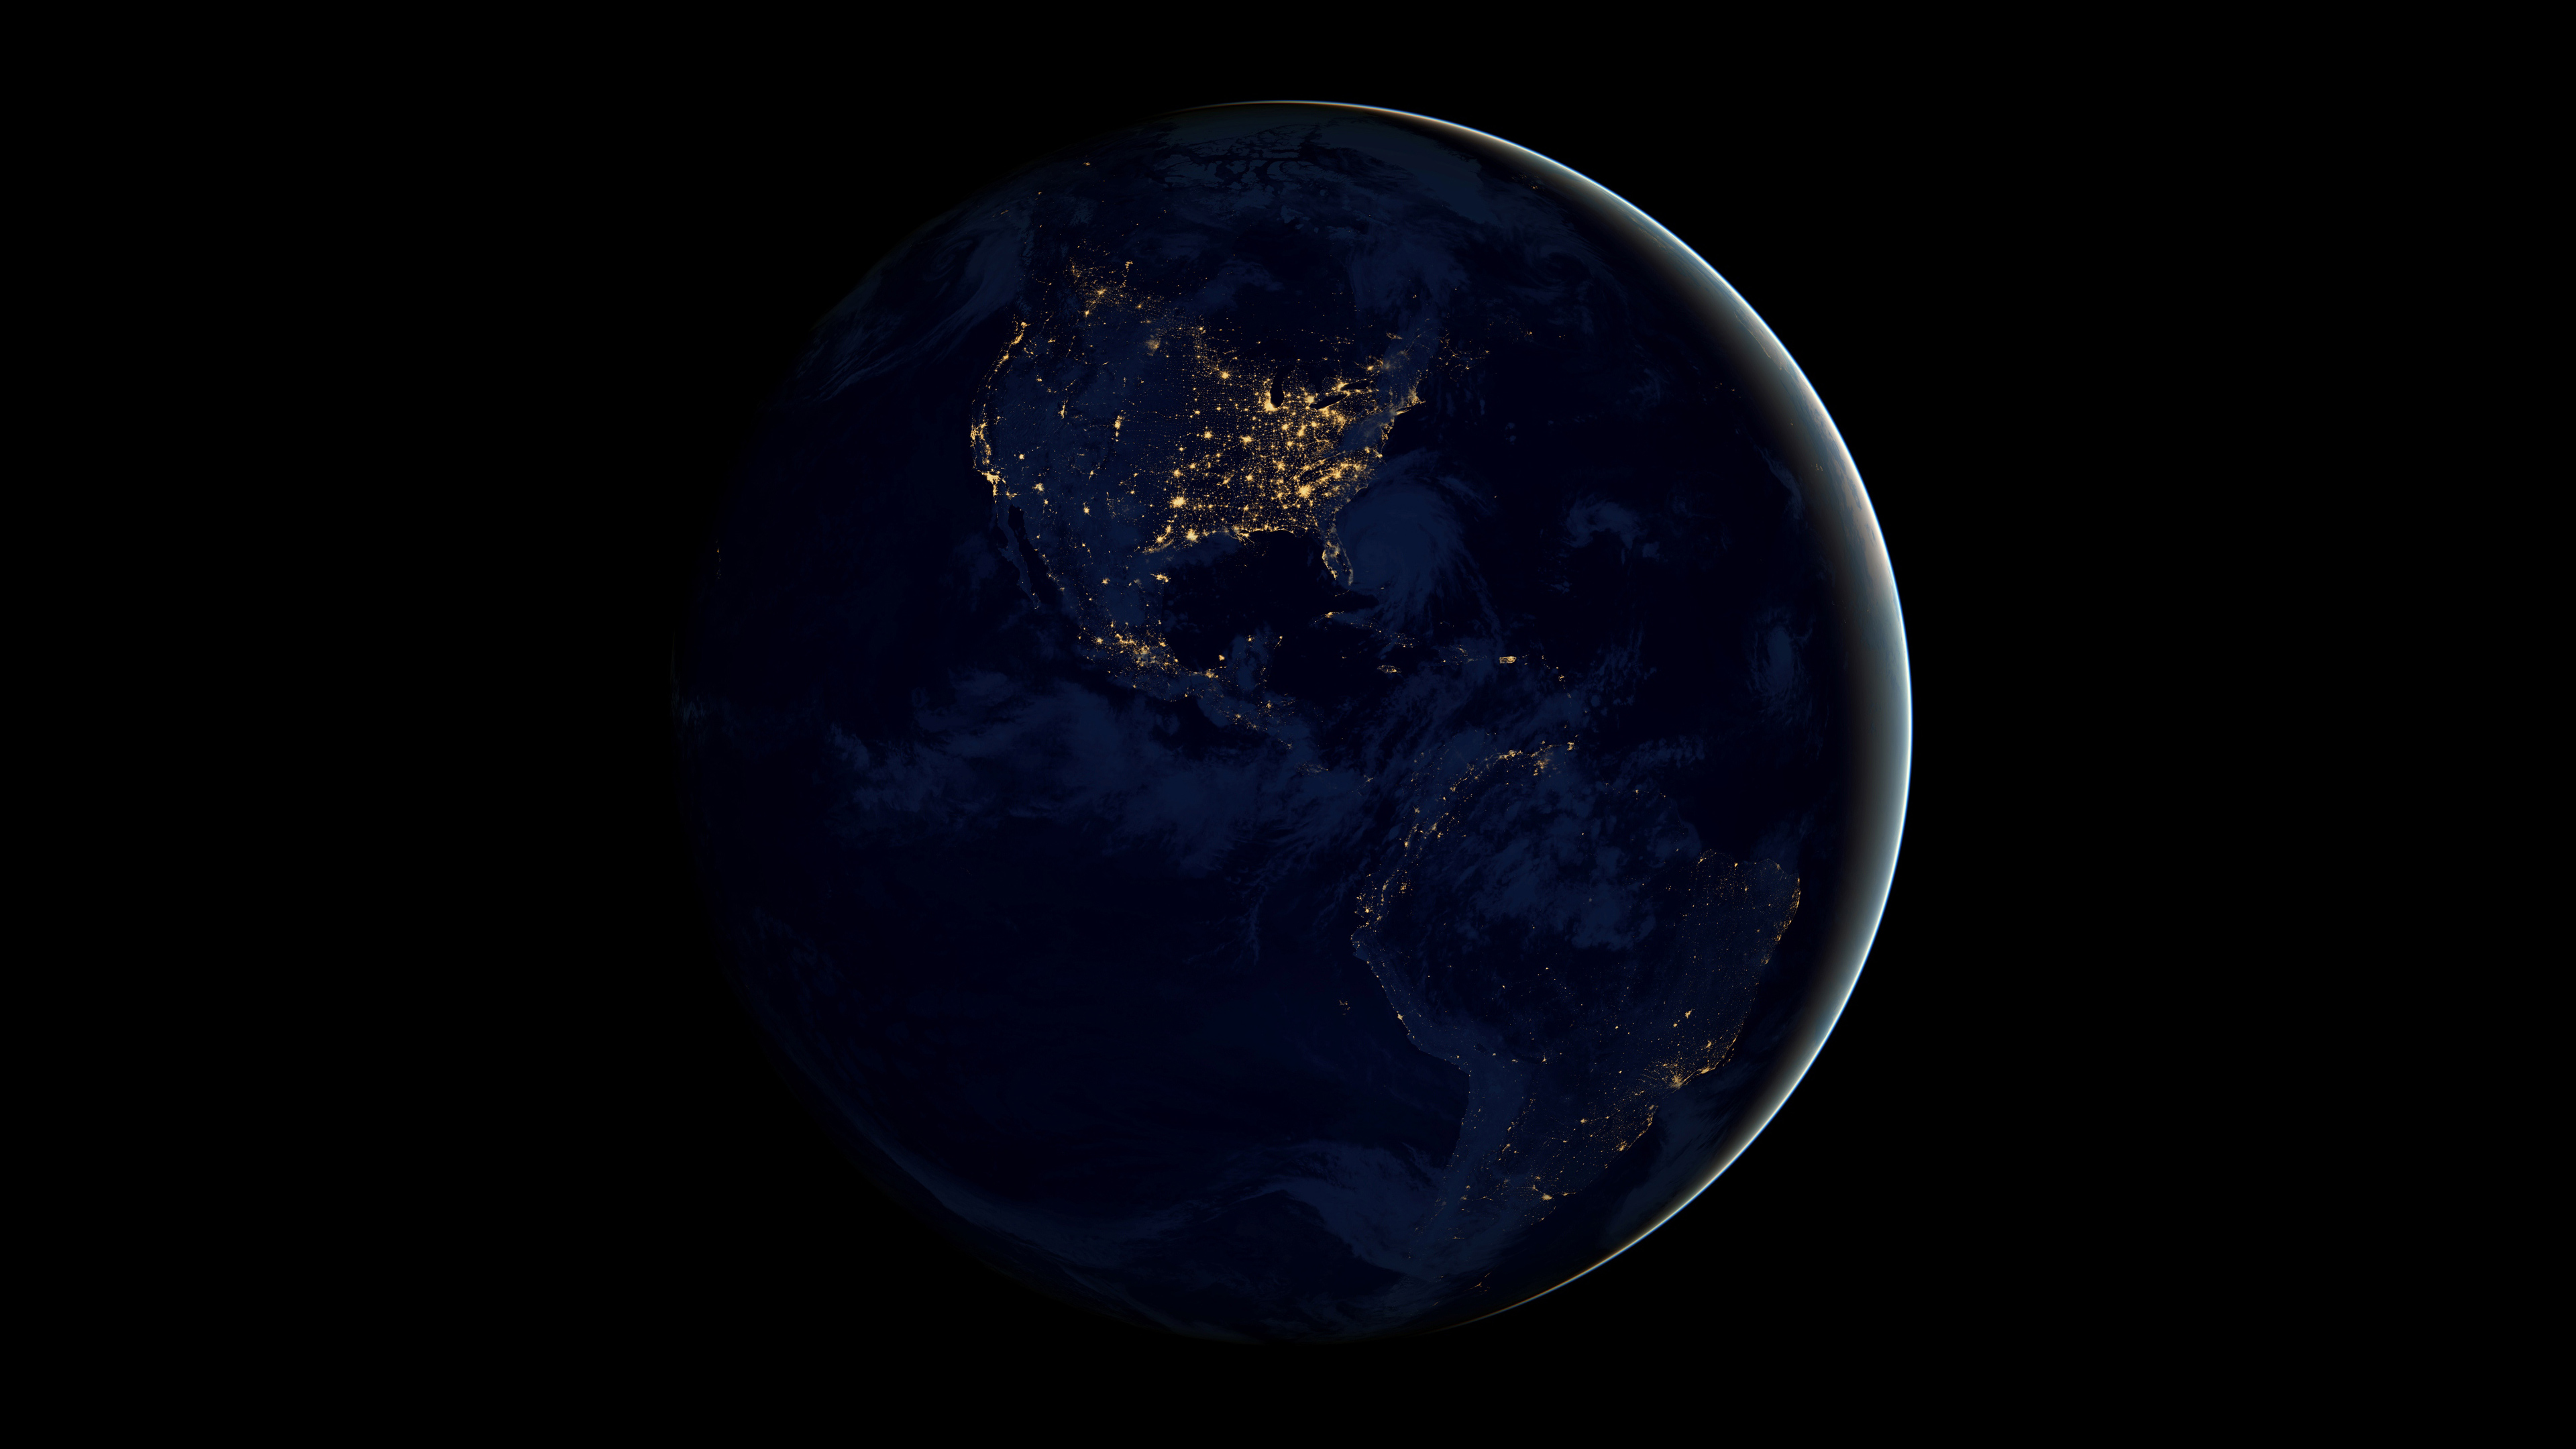 Earth From Space 4k Hd Digital Universe 4k Wallpapers Images Backgrounds Photos And Pictures